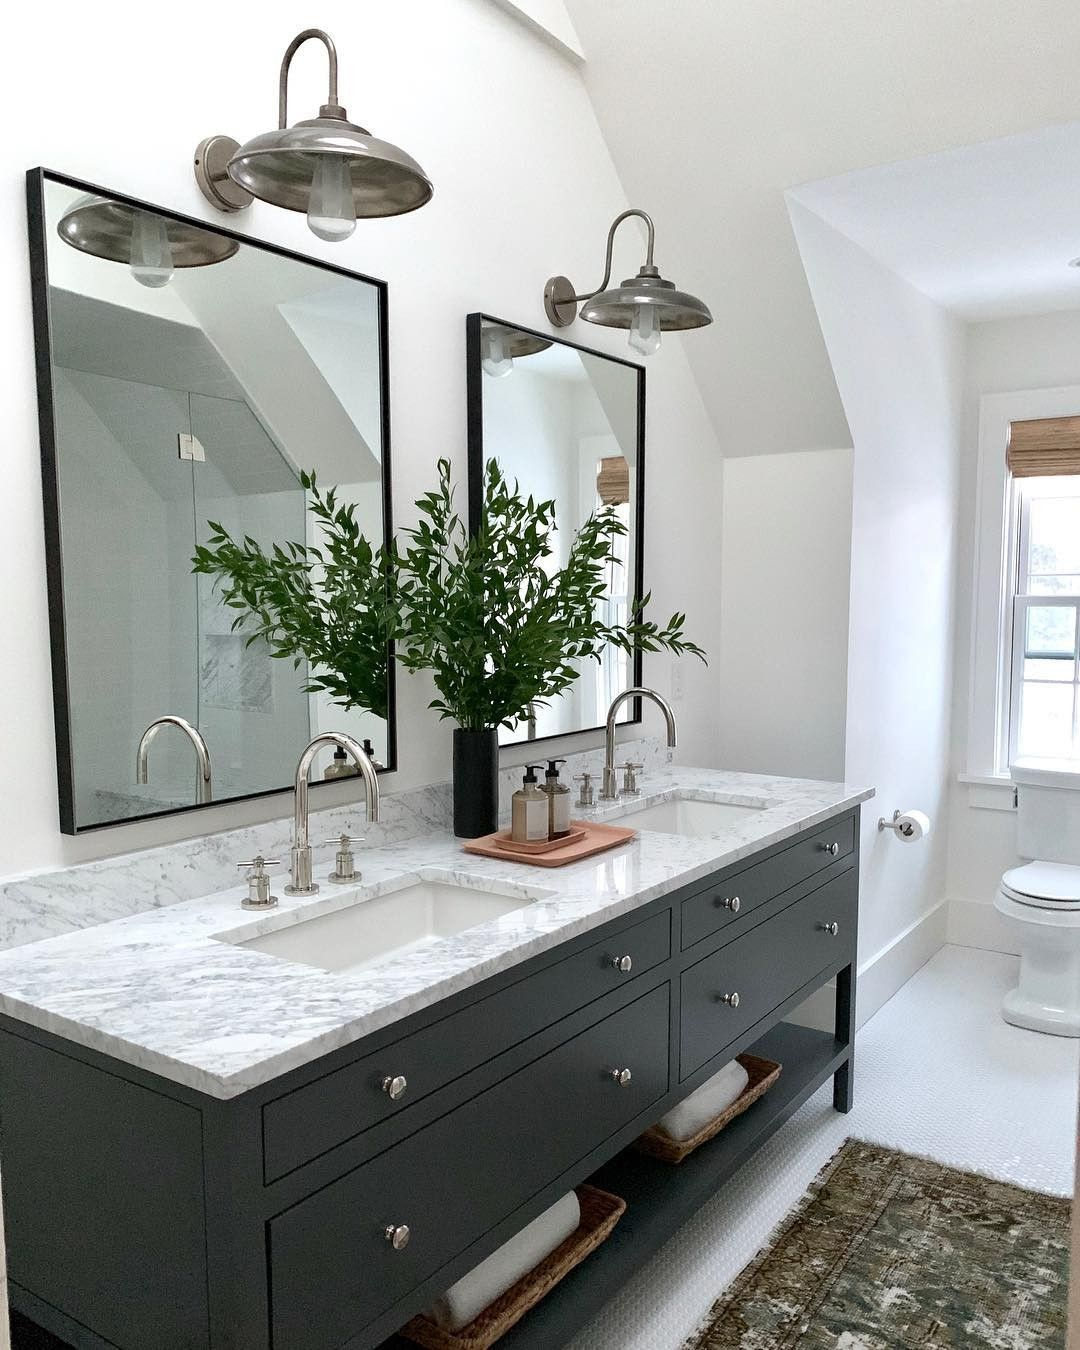 Let S Keep Going On The Before And Afters Shall We One Part Of Me Wants To Show You Everything Master Bathroom Renovation Amber Interiors Beautiful Bathrooms